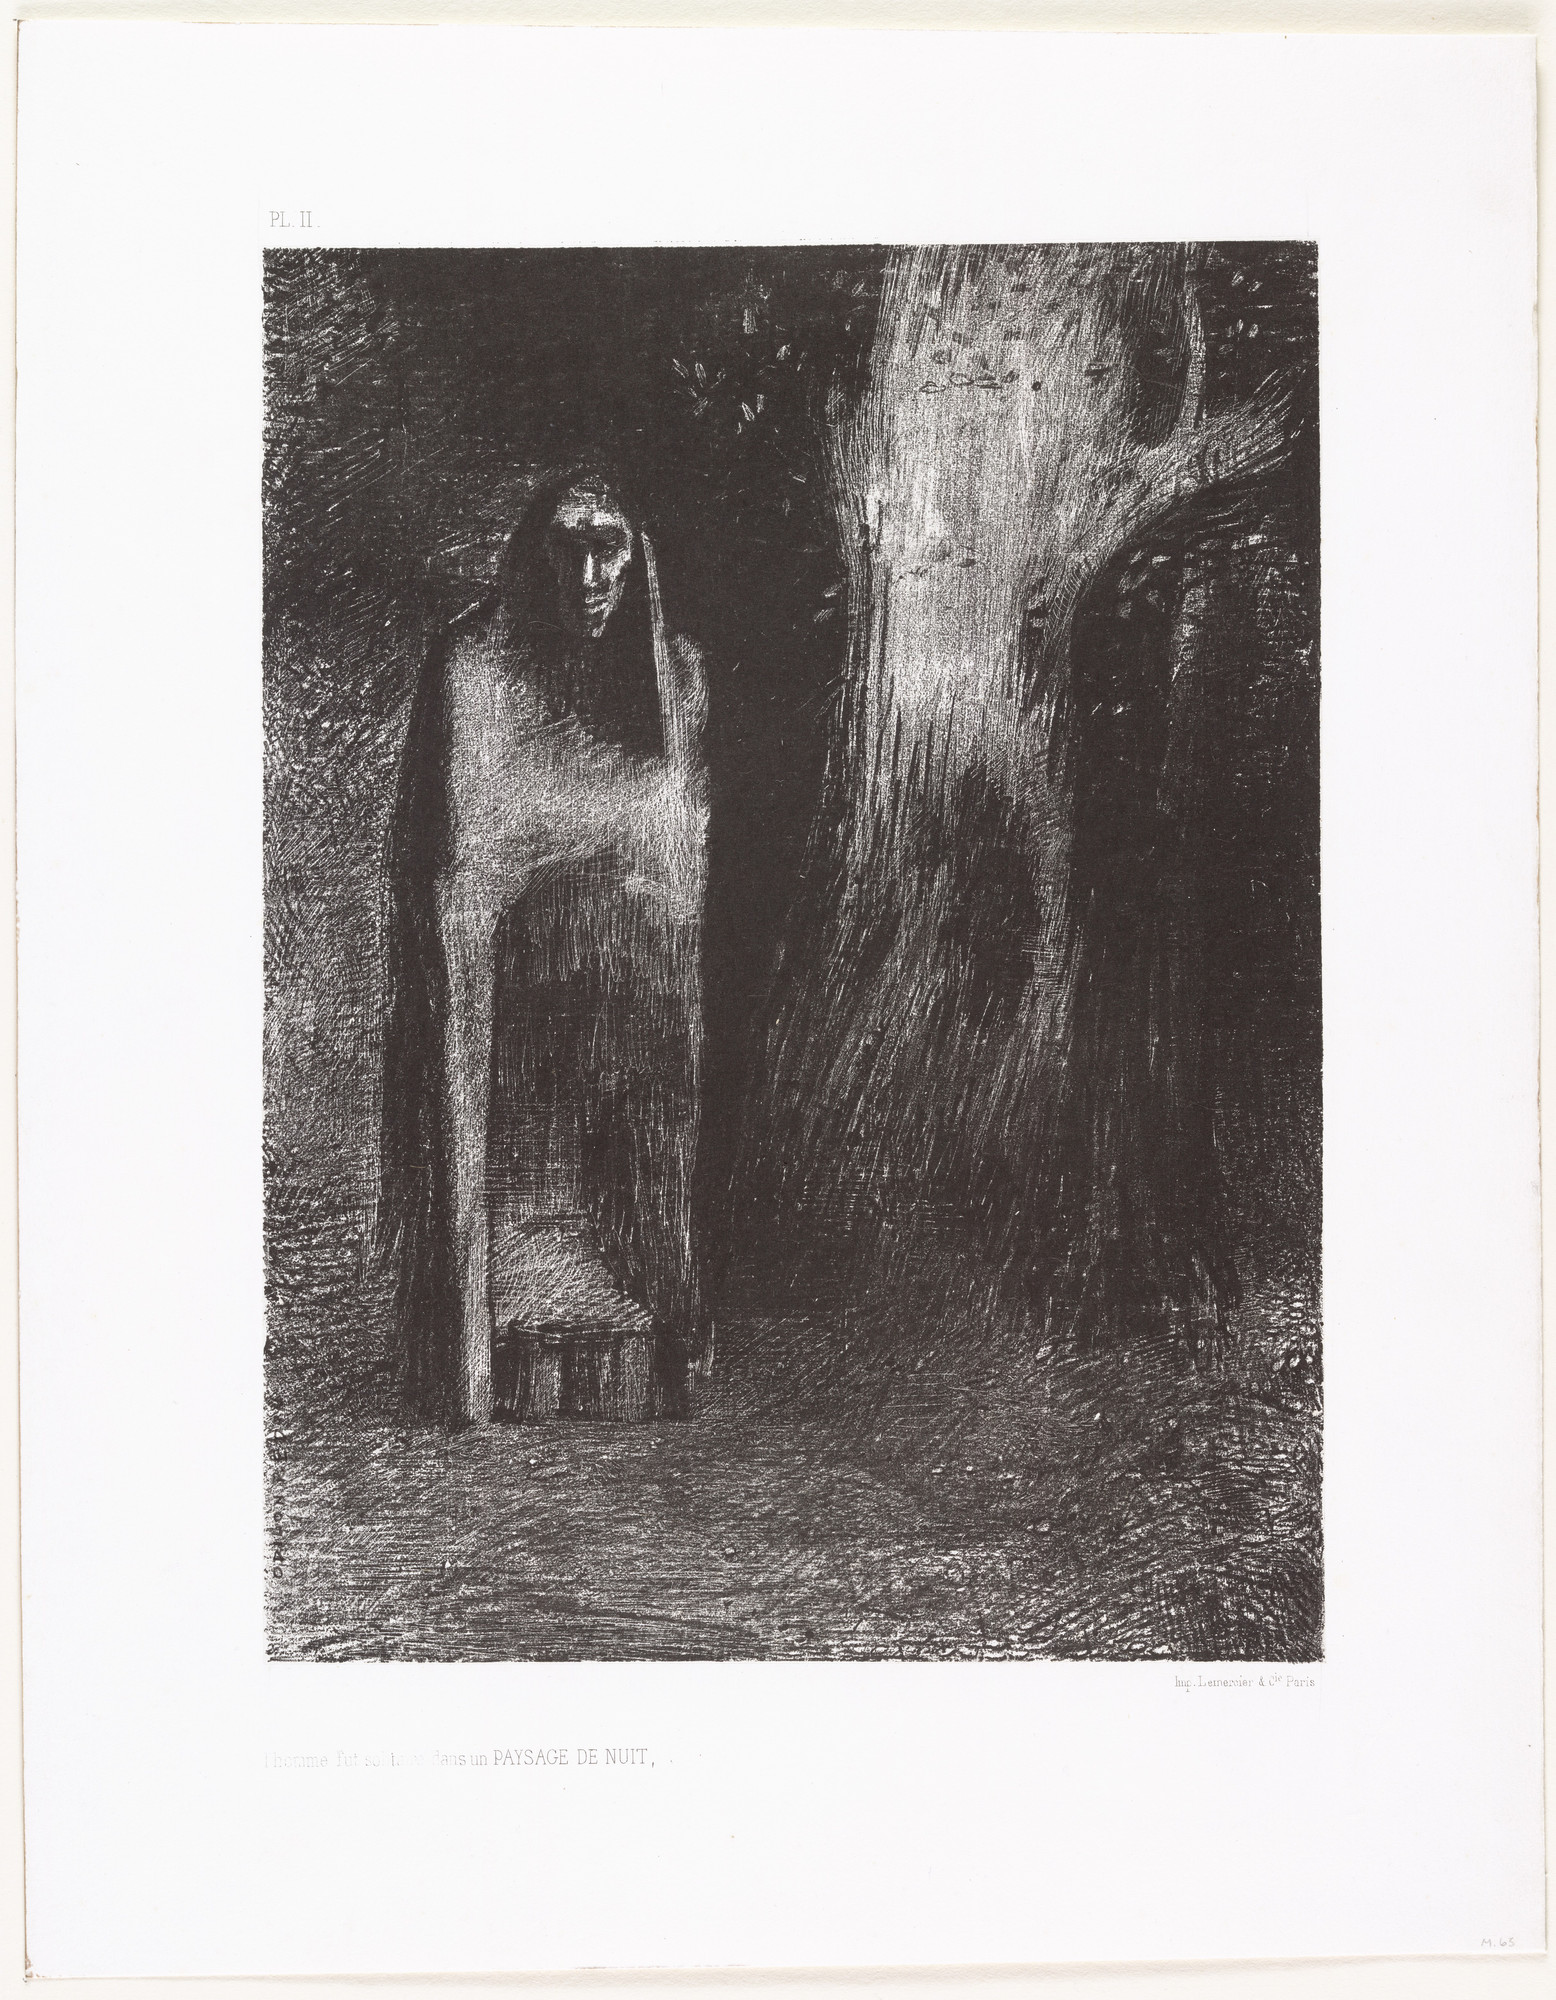 Odilon Redon. The Man Was Alone in a Night Landscape (L'Homme fut solitaire dans un paysage de nuit). 1886